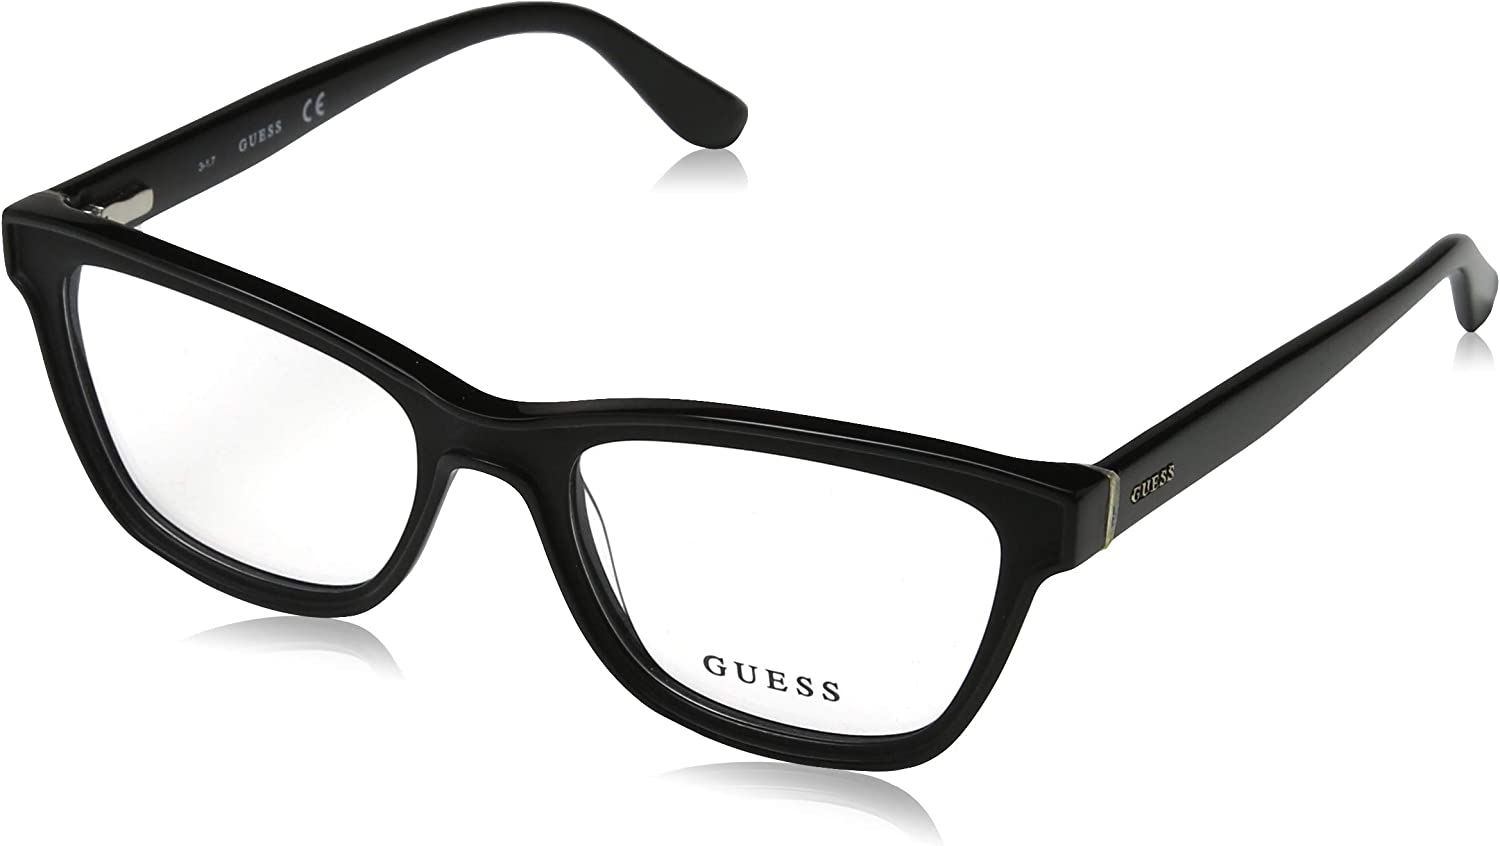 Guess Optical Frame GU2649 002 51 Montature Schwarz Donna Nero